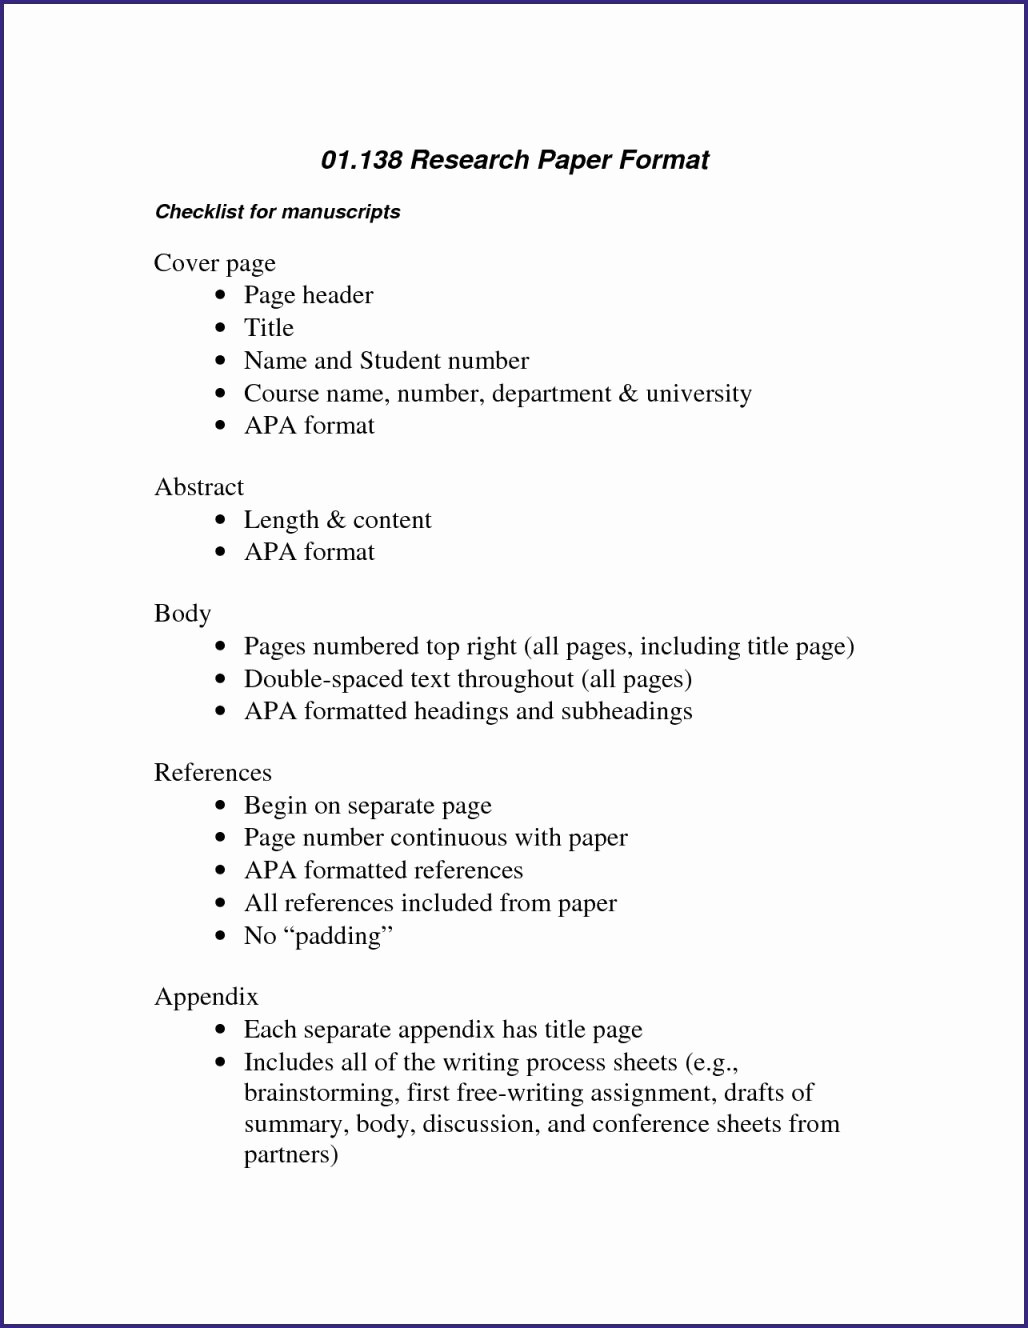 014 Research Paper Abstract For Apa Style Template Lovely Beautiful Super Example Wondrous Writing An A Of In Format Full